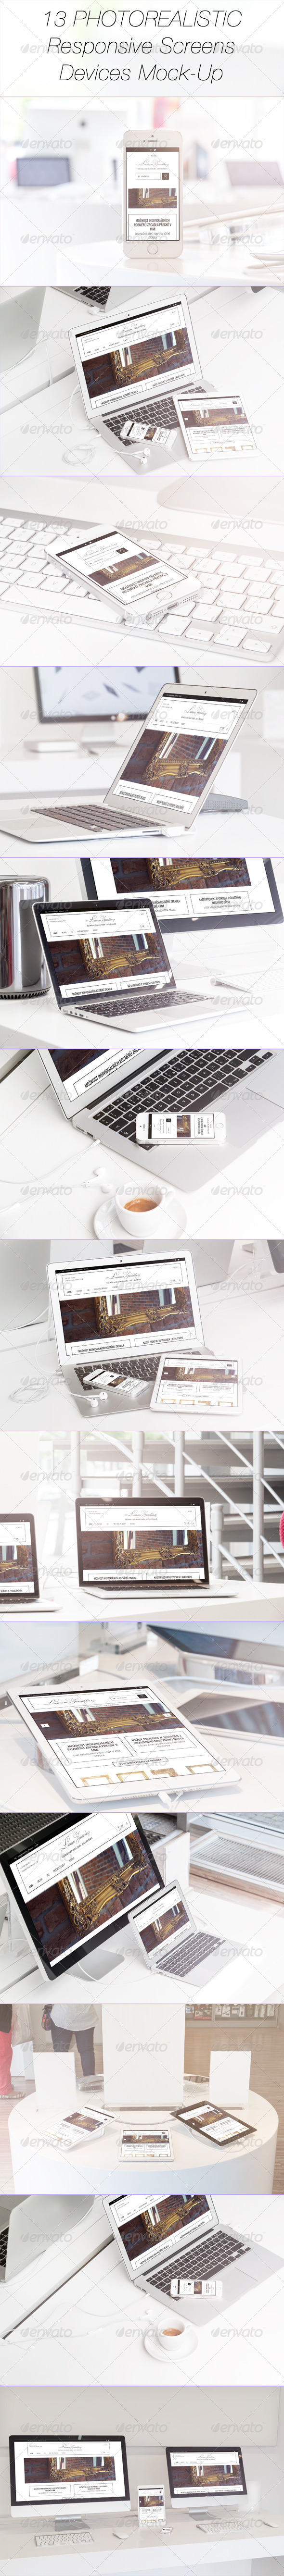 GraphicRiver 13 Photorealistic Responsive Devices Mock-Up 7959821